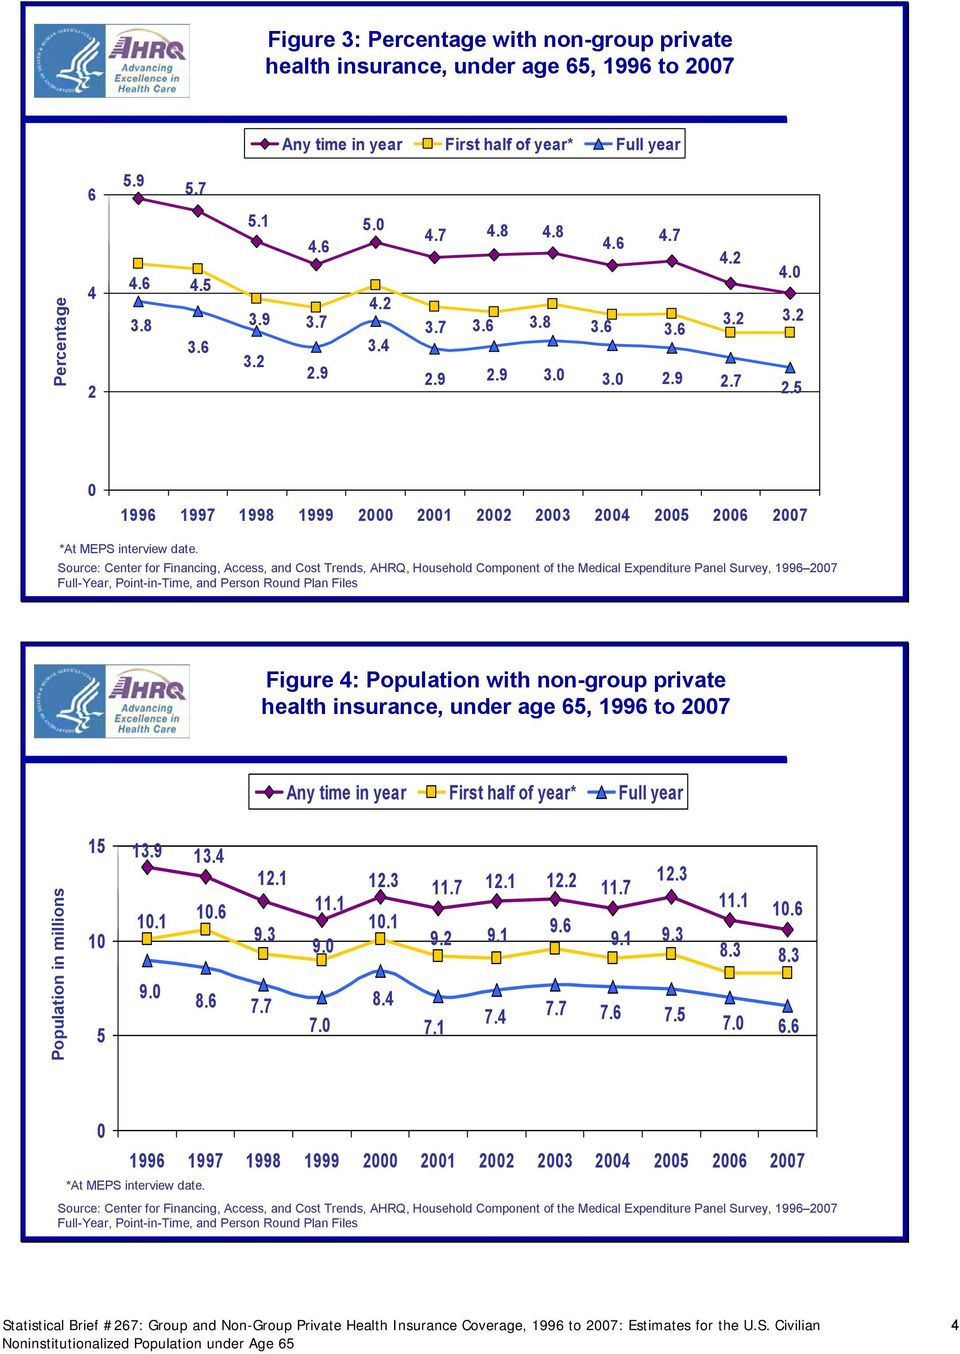 6 Statistical Brief #67: Group and Non-Group Private Health Insurance Coverage, 1996 to 7: Estimates for the U.S. Civilian Noninstitutionalized Population under Age 6